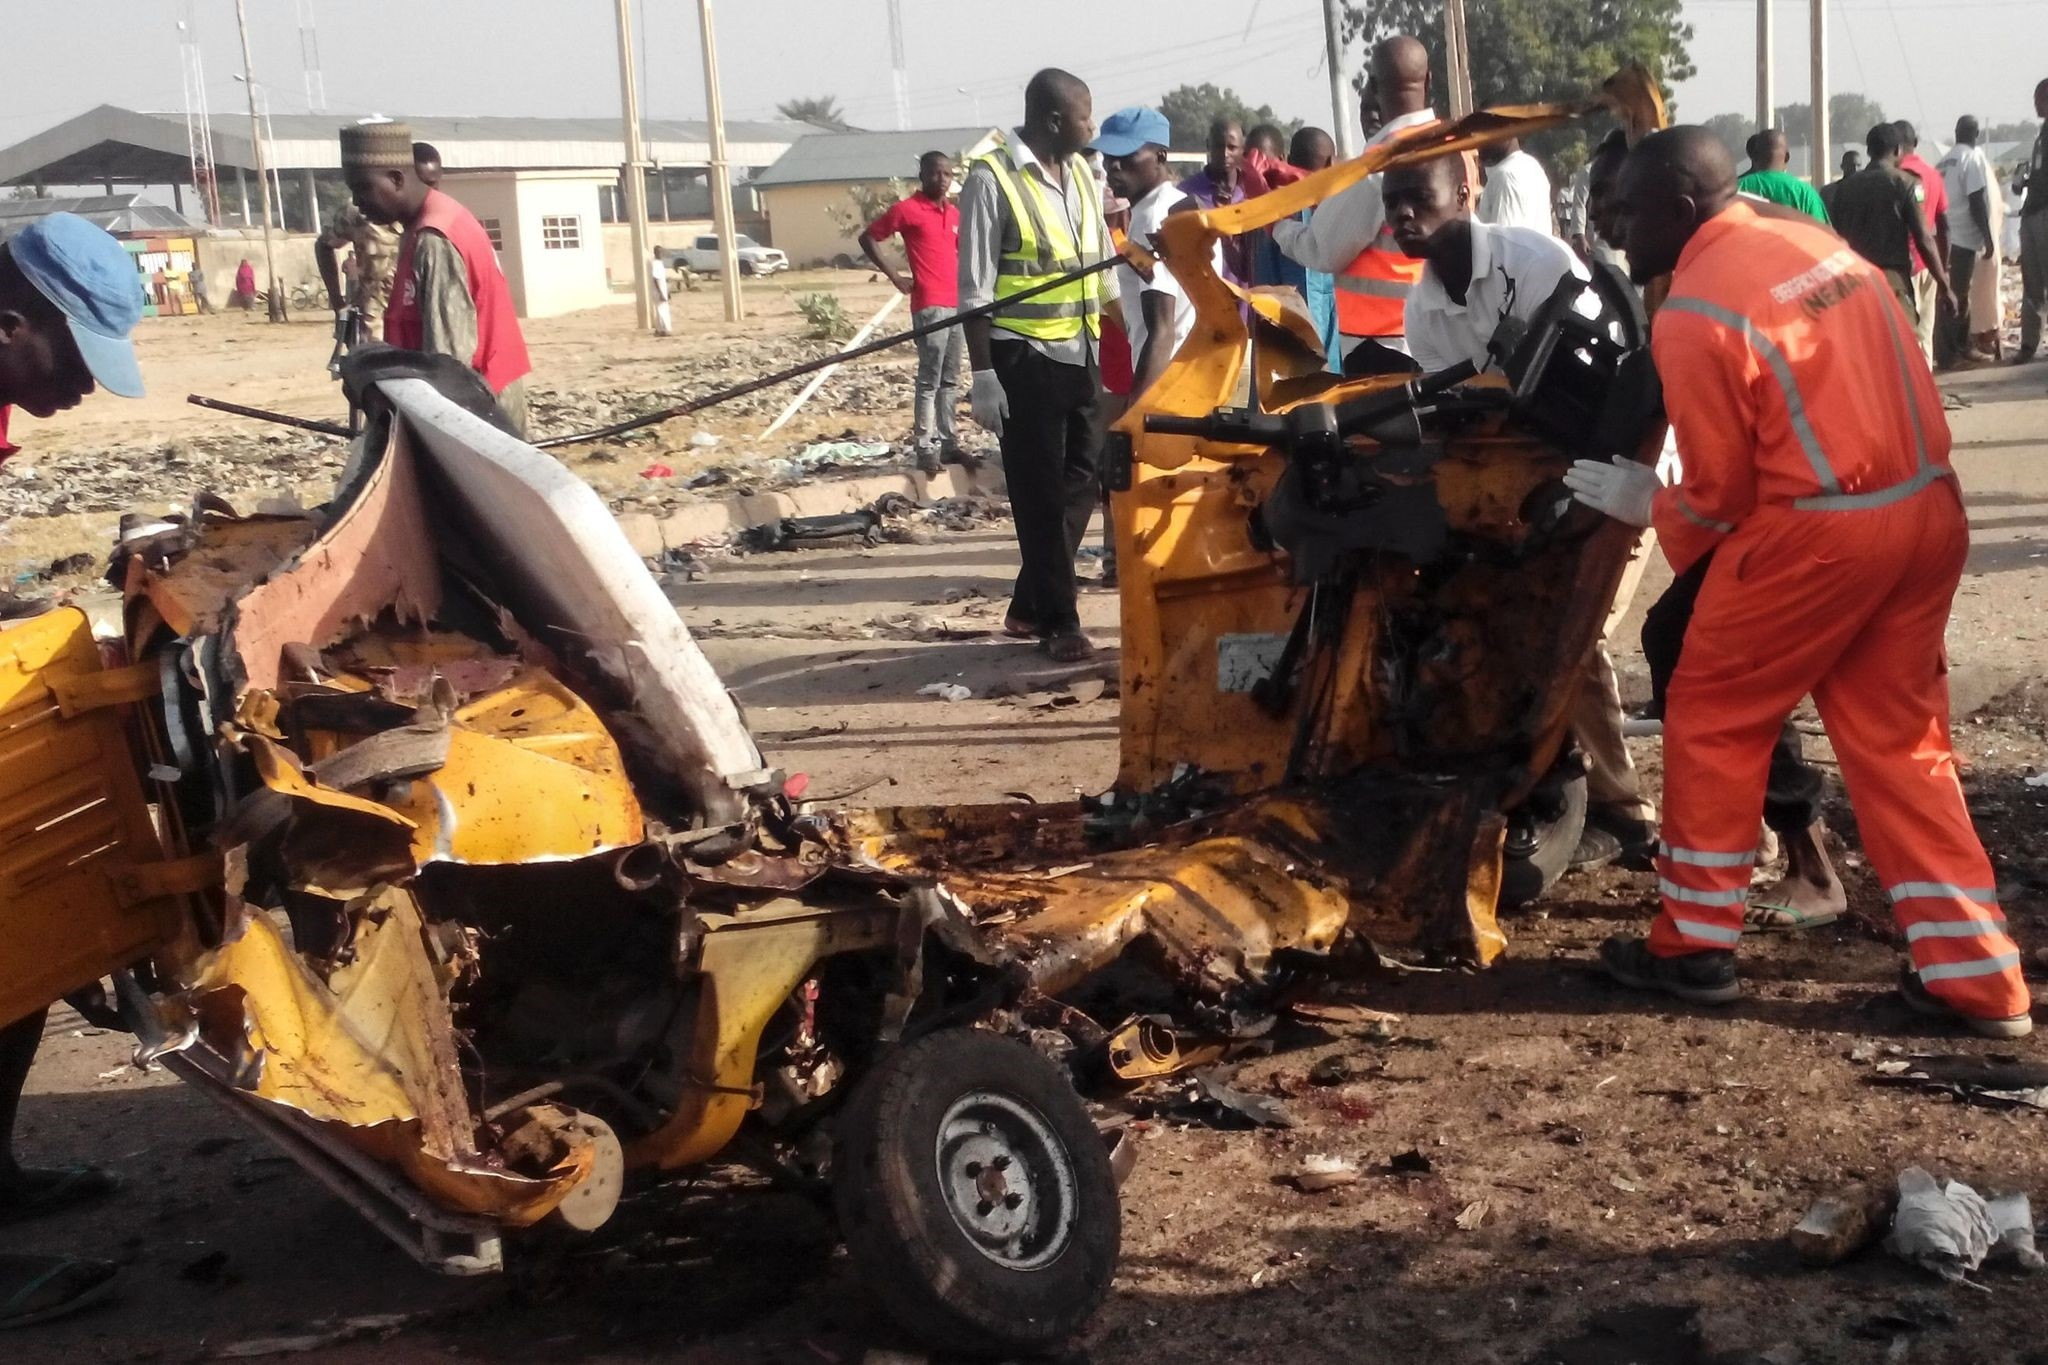 This file photo taken on October 29, 2016 shows emergency personnel standing near the wreacked remains of a vehicle ripped apart following two suicide bombings in Nigeria. (AFP Photo)